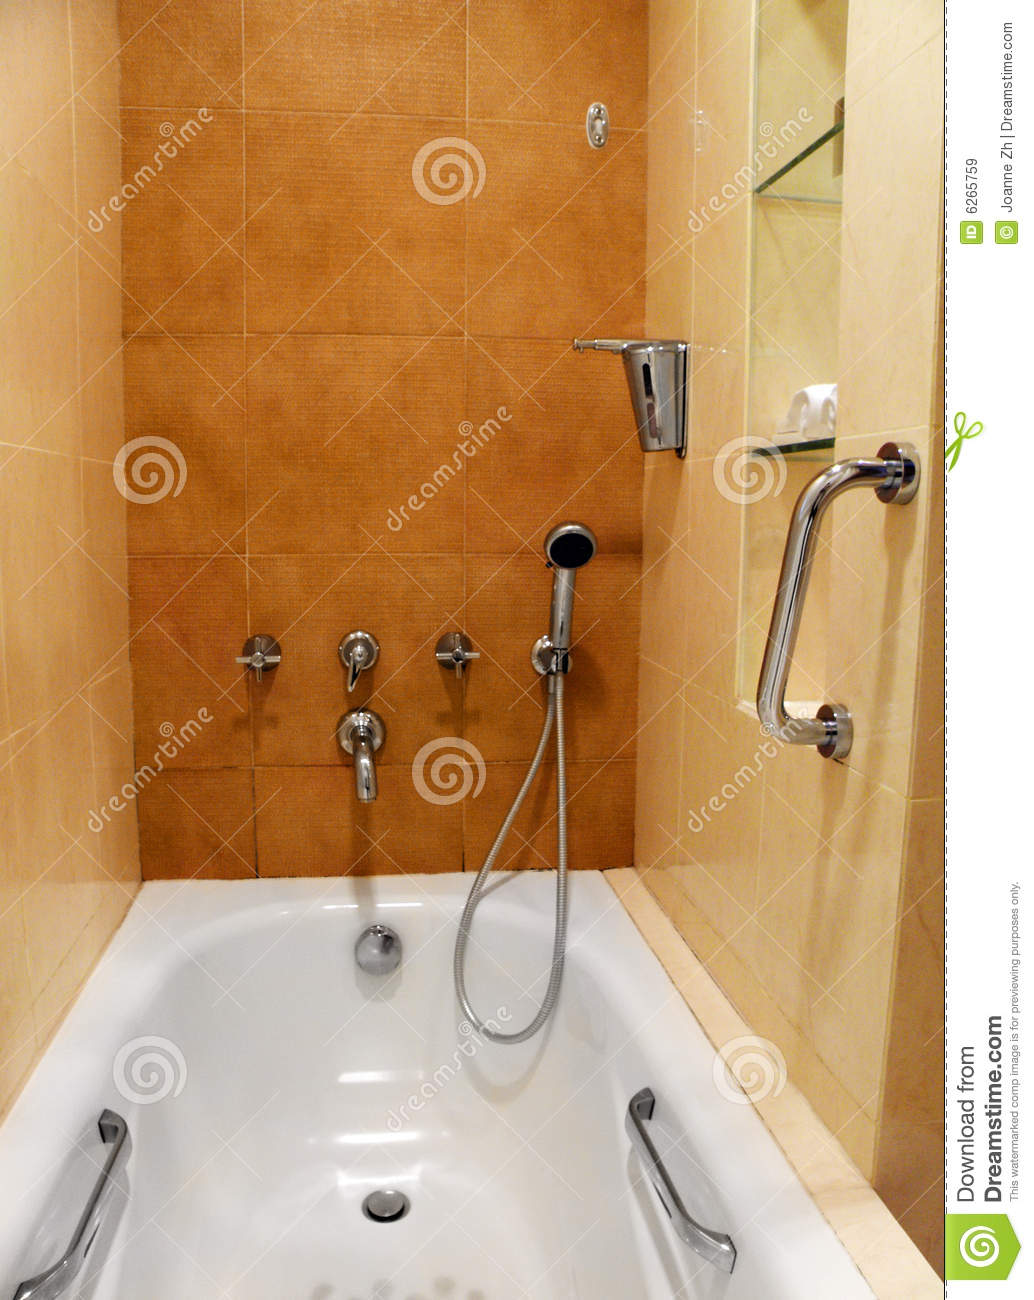 Bathroom Taps And Fittings Stock Image Image Of Handrail